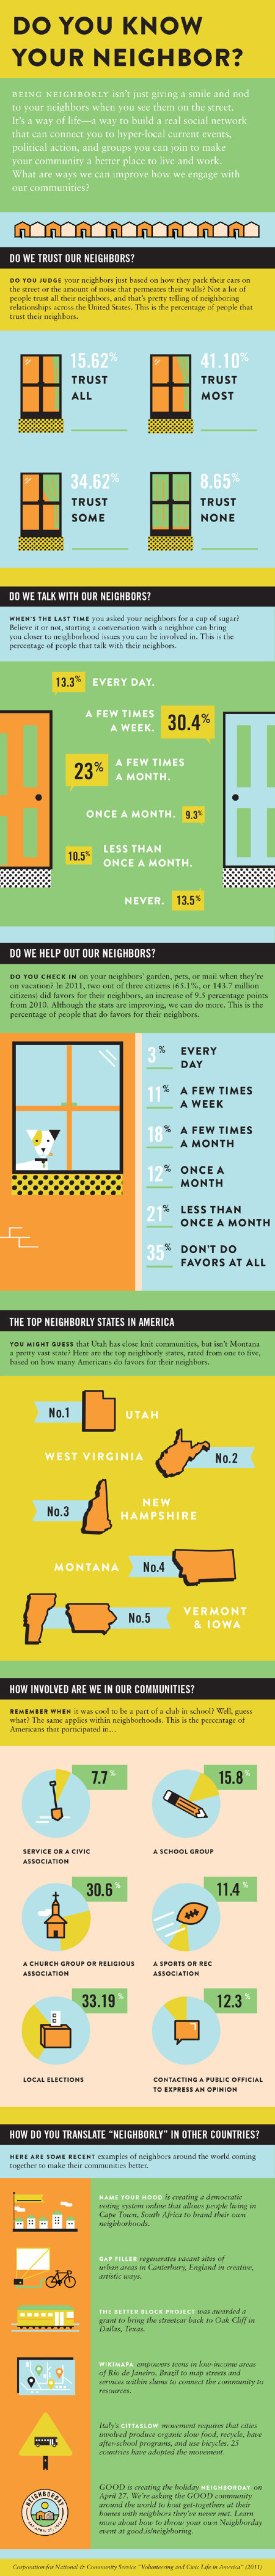 www.good.is/posts/infographic-do-you-know-your-neighbor